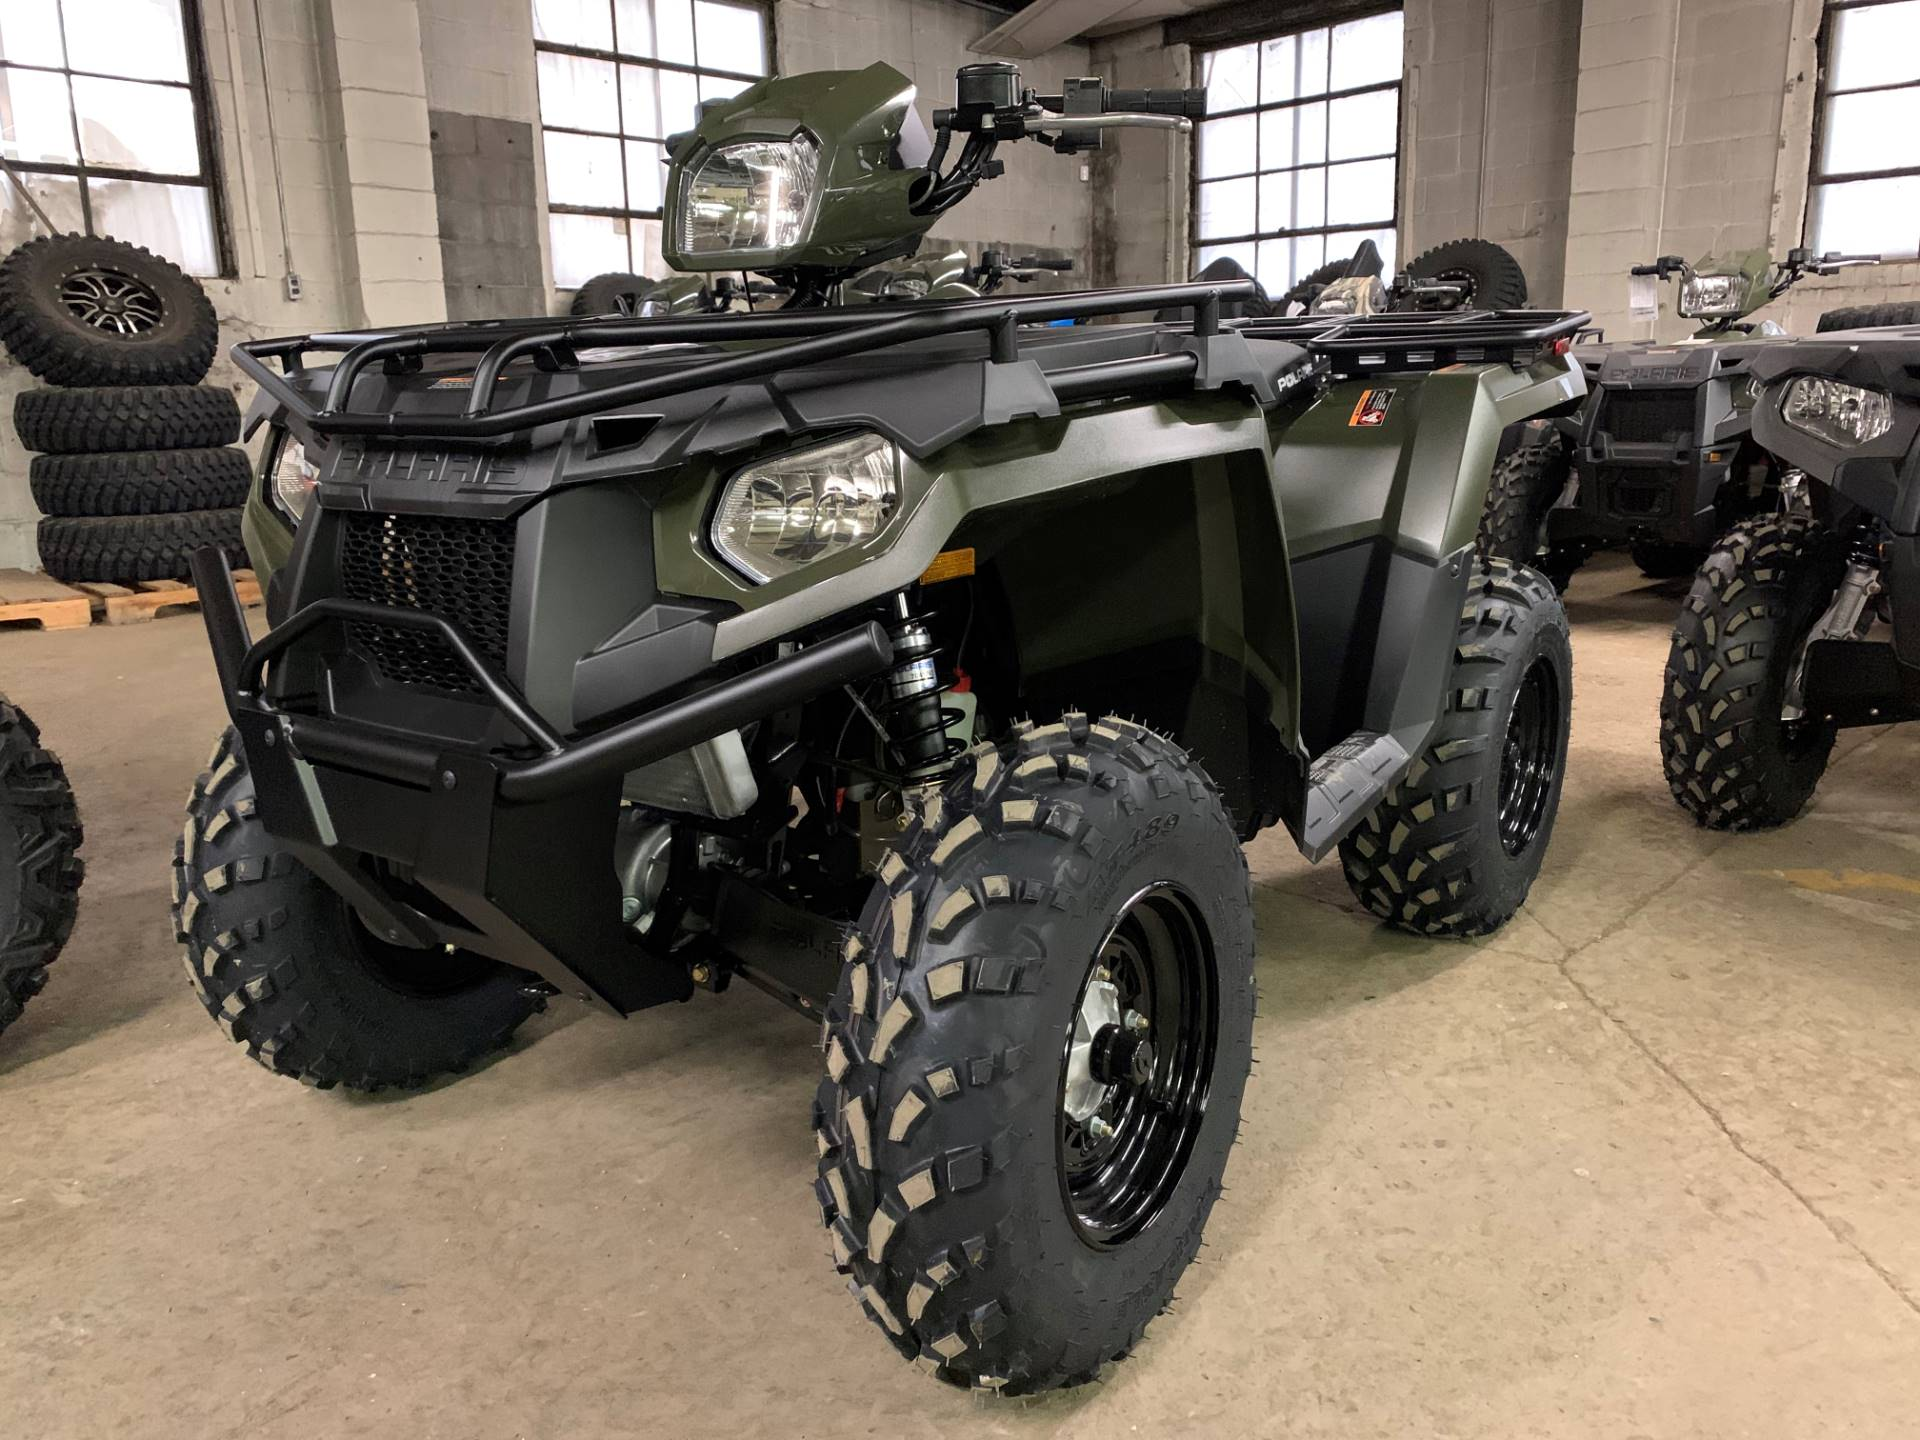 2020 Polaris Sportsman 570 EPS Utility Package in Chicora, Pennsylvania - Photo 7